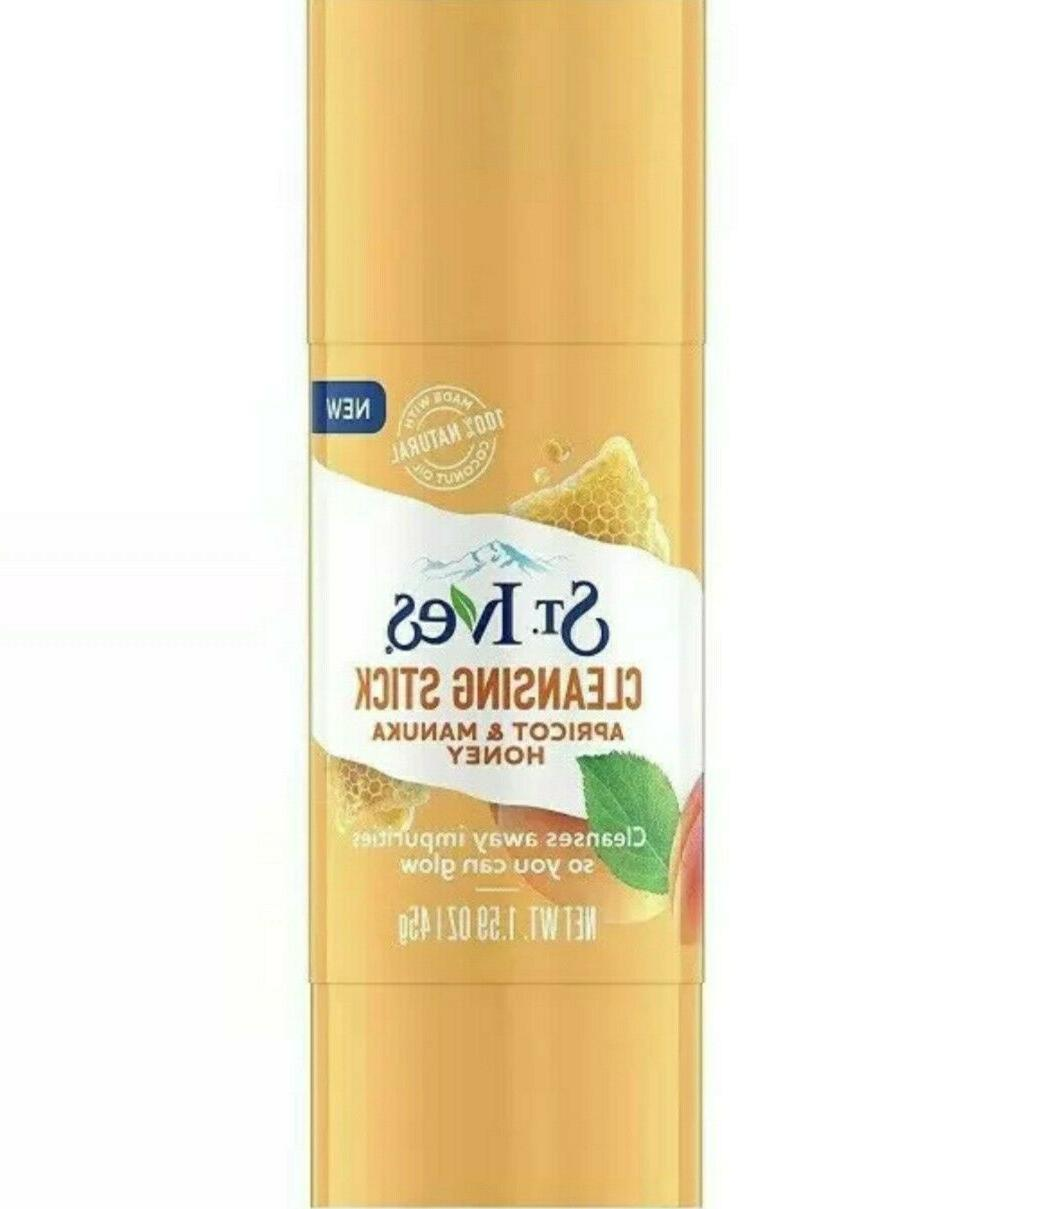 st ives cleansing stick apricot and manuka